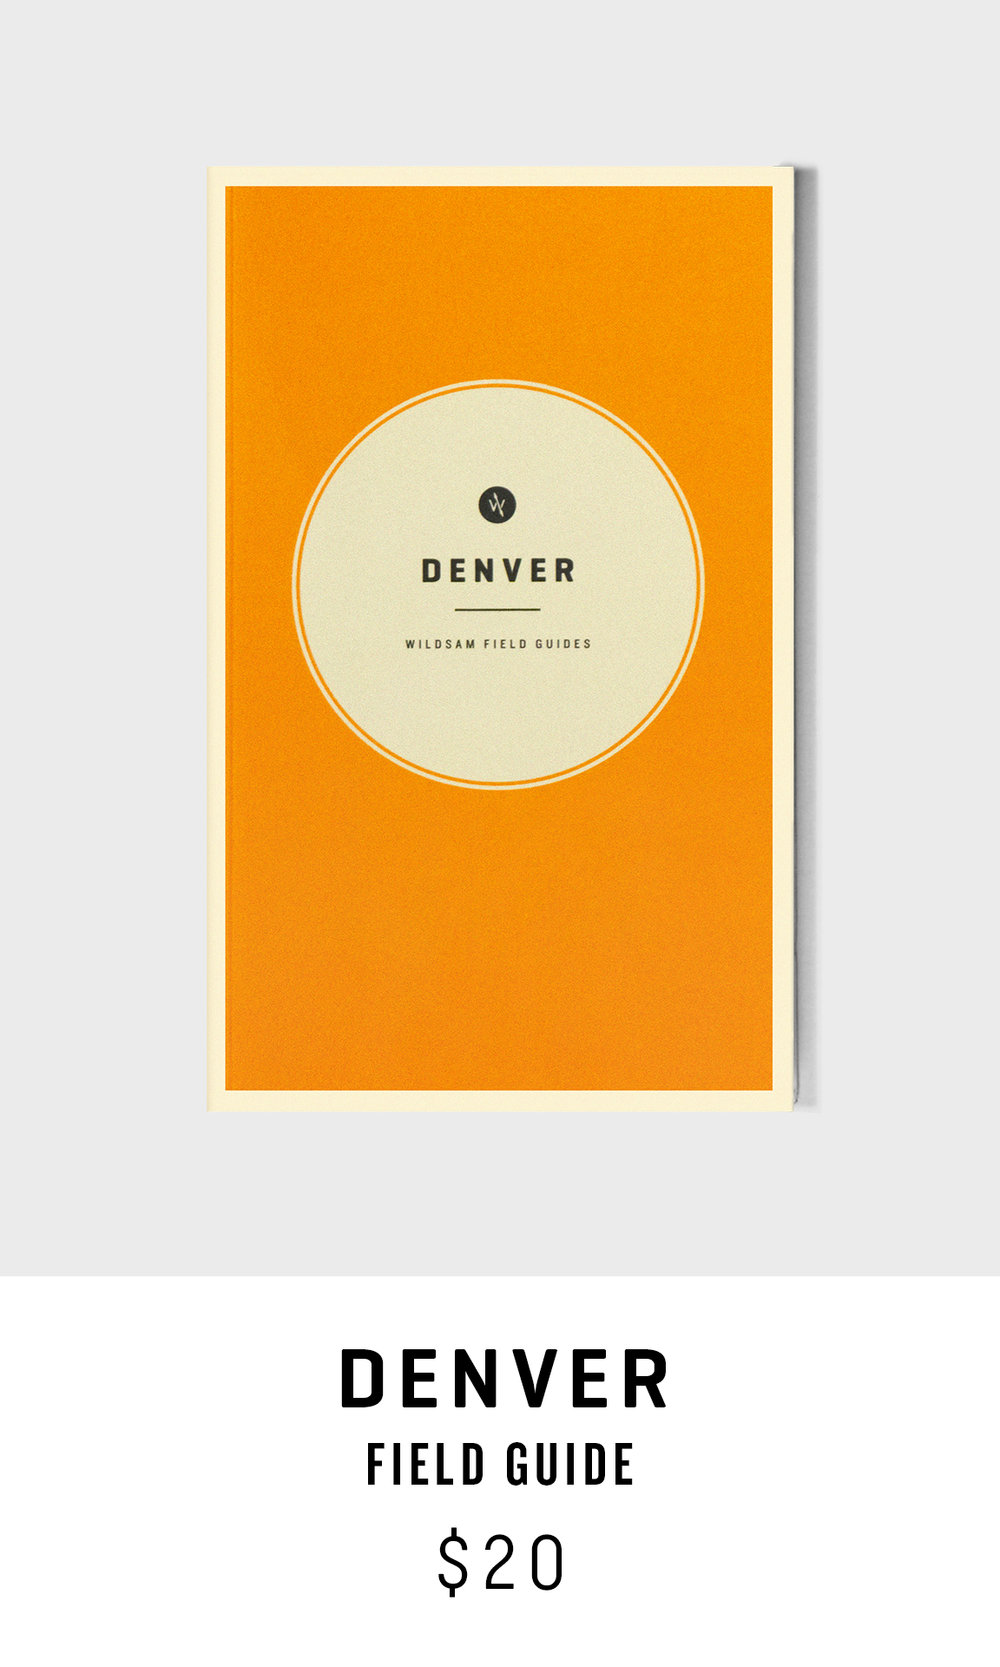 Denver-Product-CARD.jpg